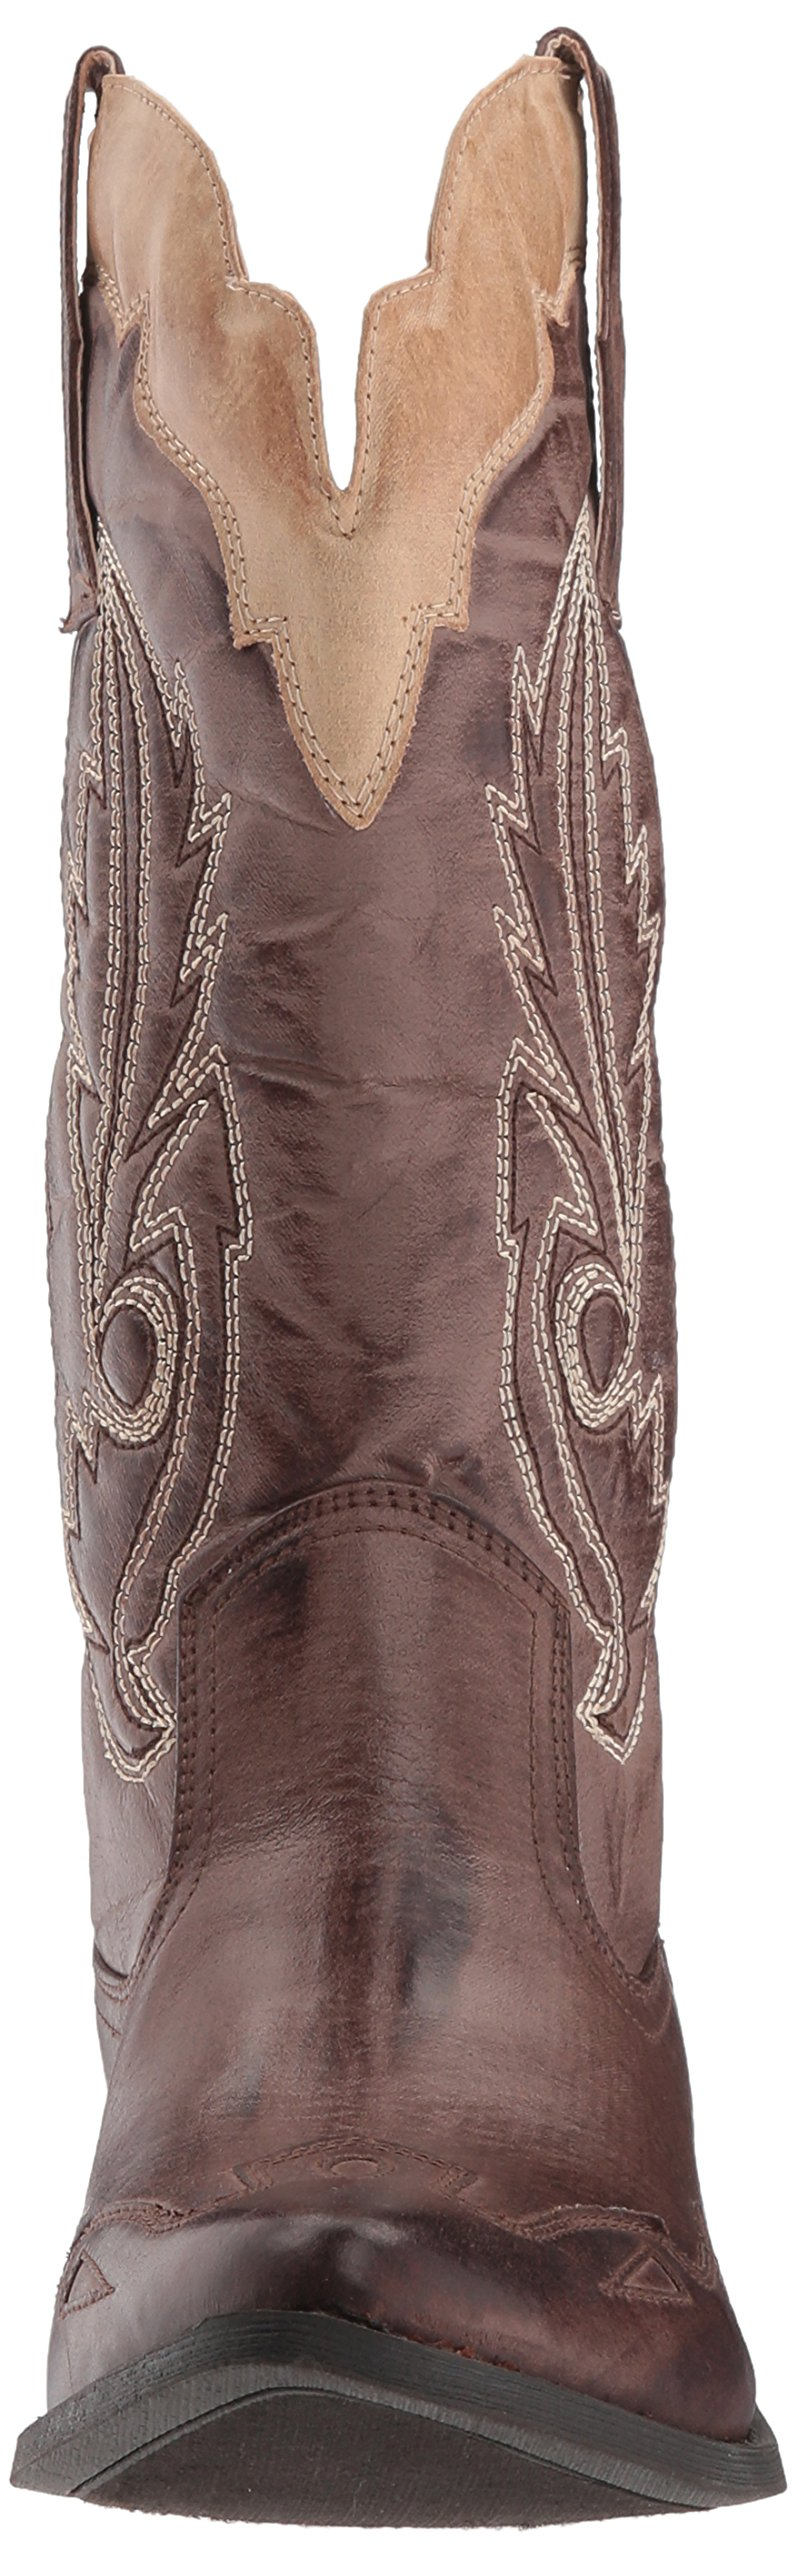 Coconuts by Matisse Women's Cimmaron Boot,Choco/Beige,10 M US by Coconuts by Matisse (Image #4)